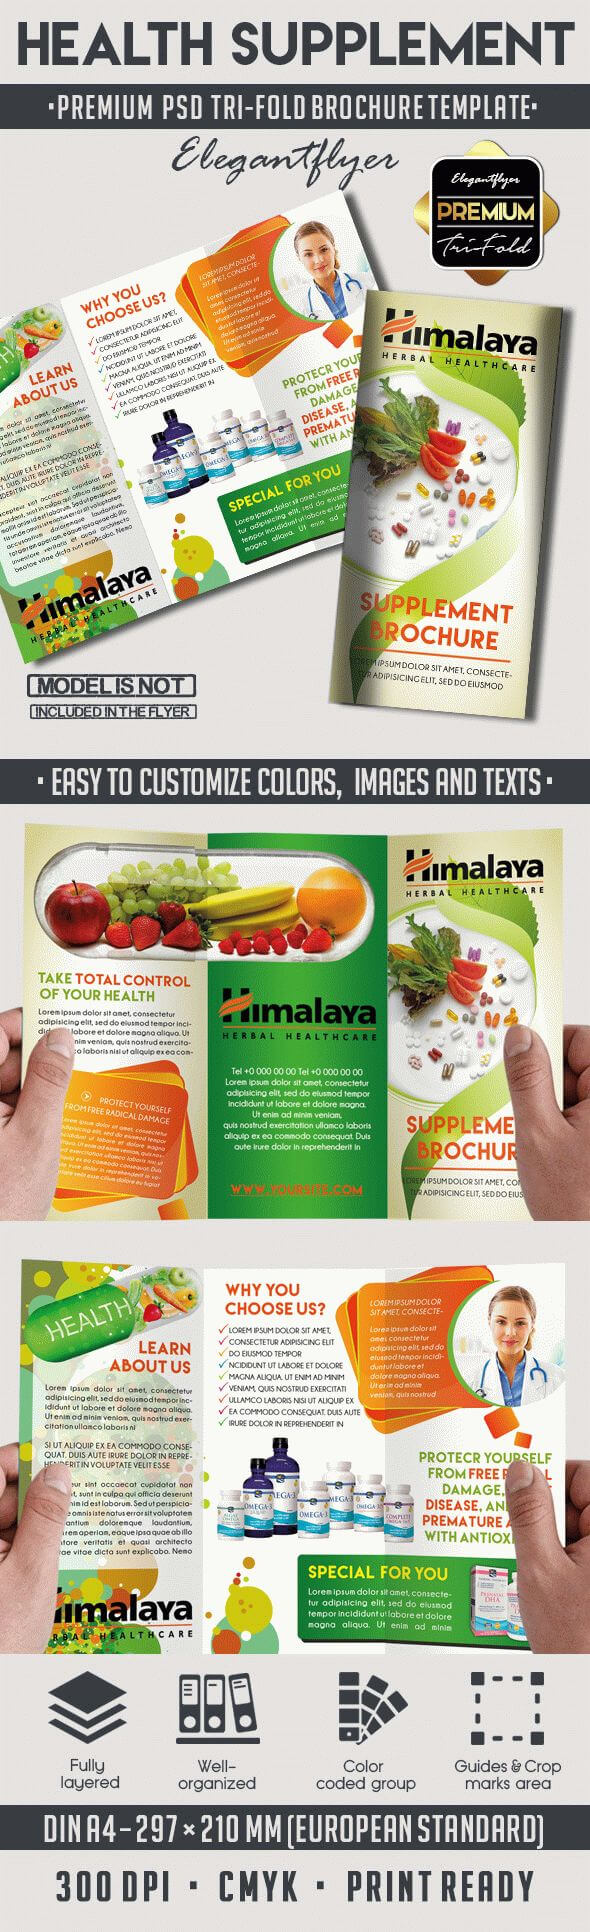 Health Supplement Brochure with regard to Nutrition Brochure Template